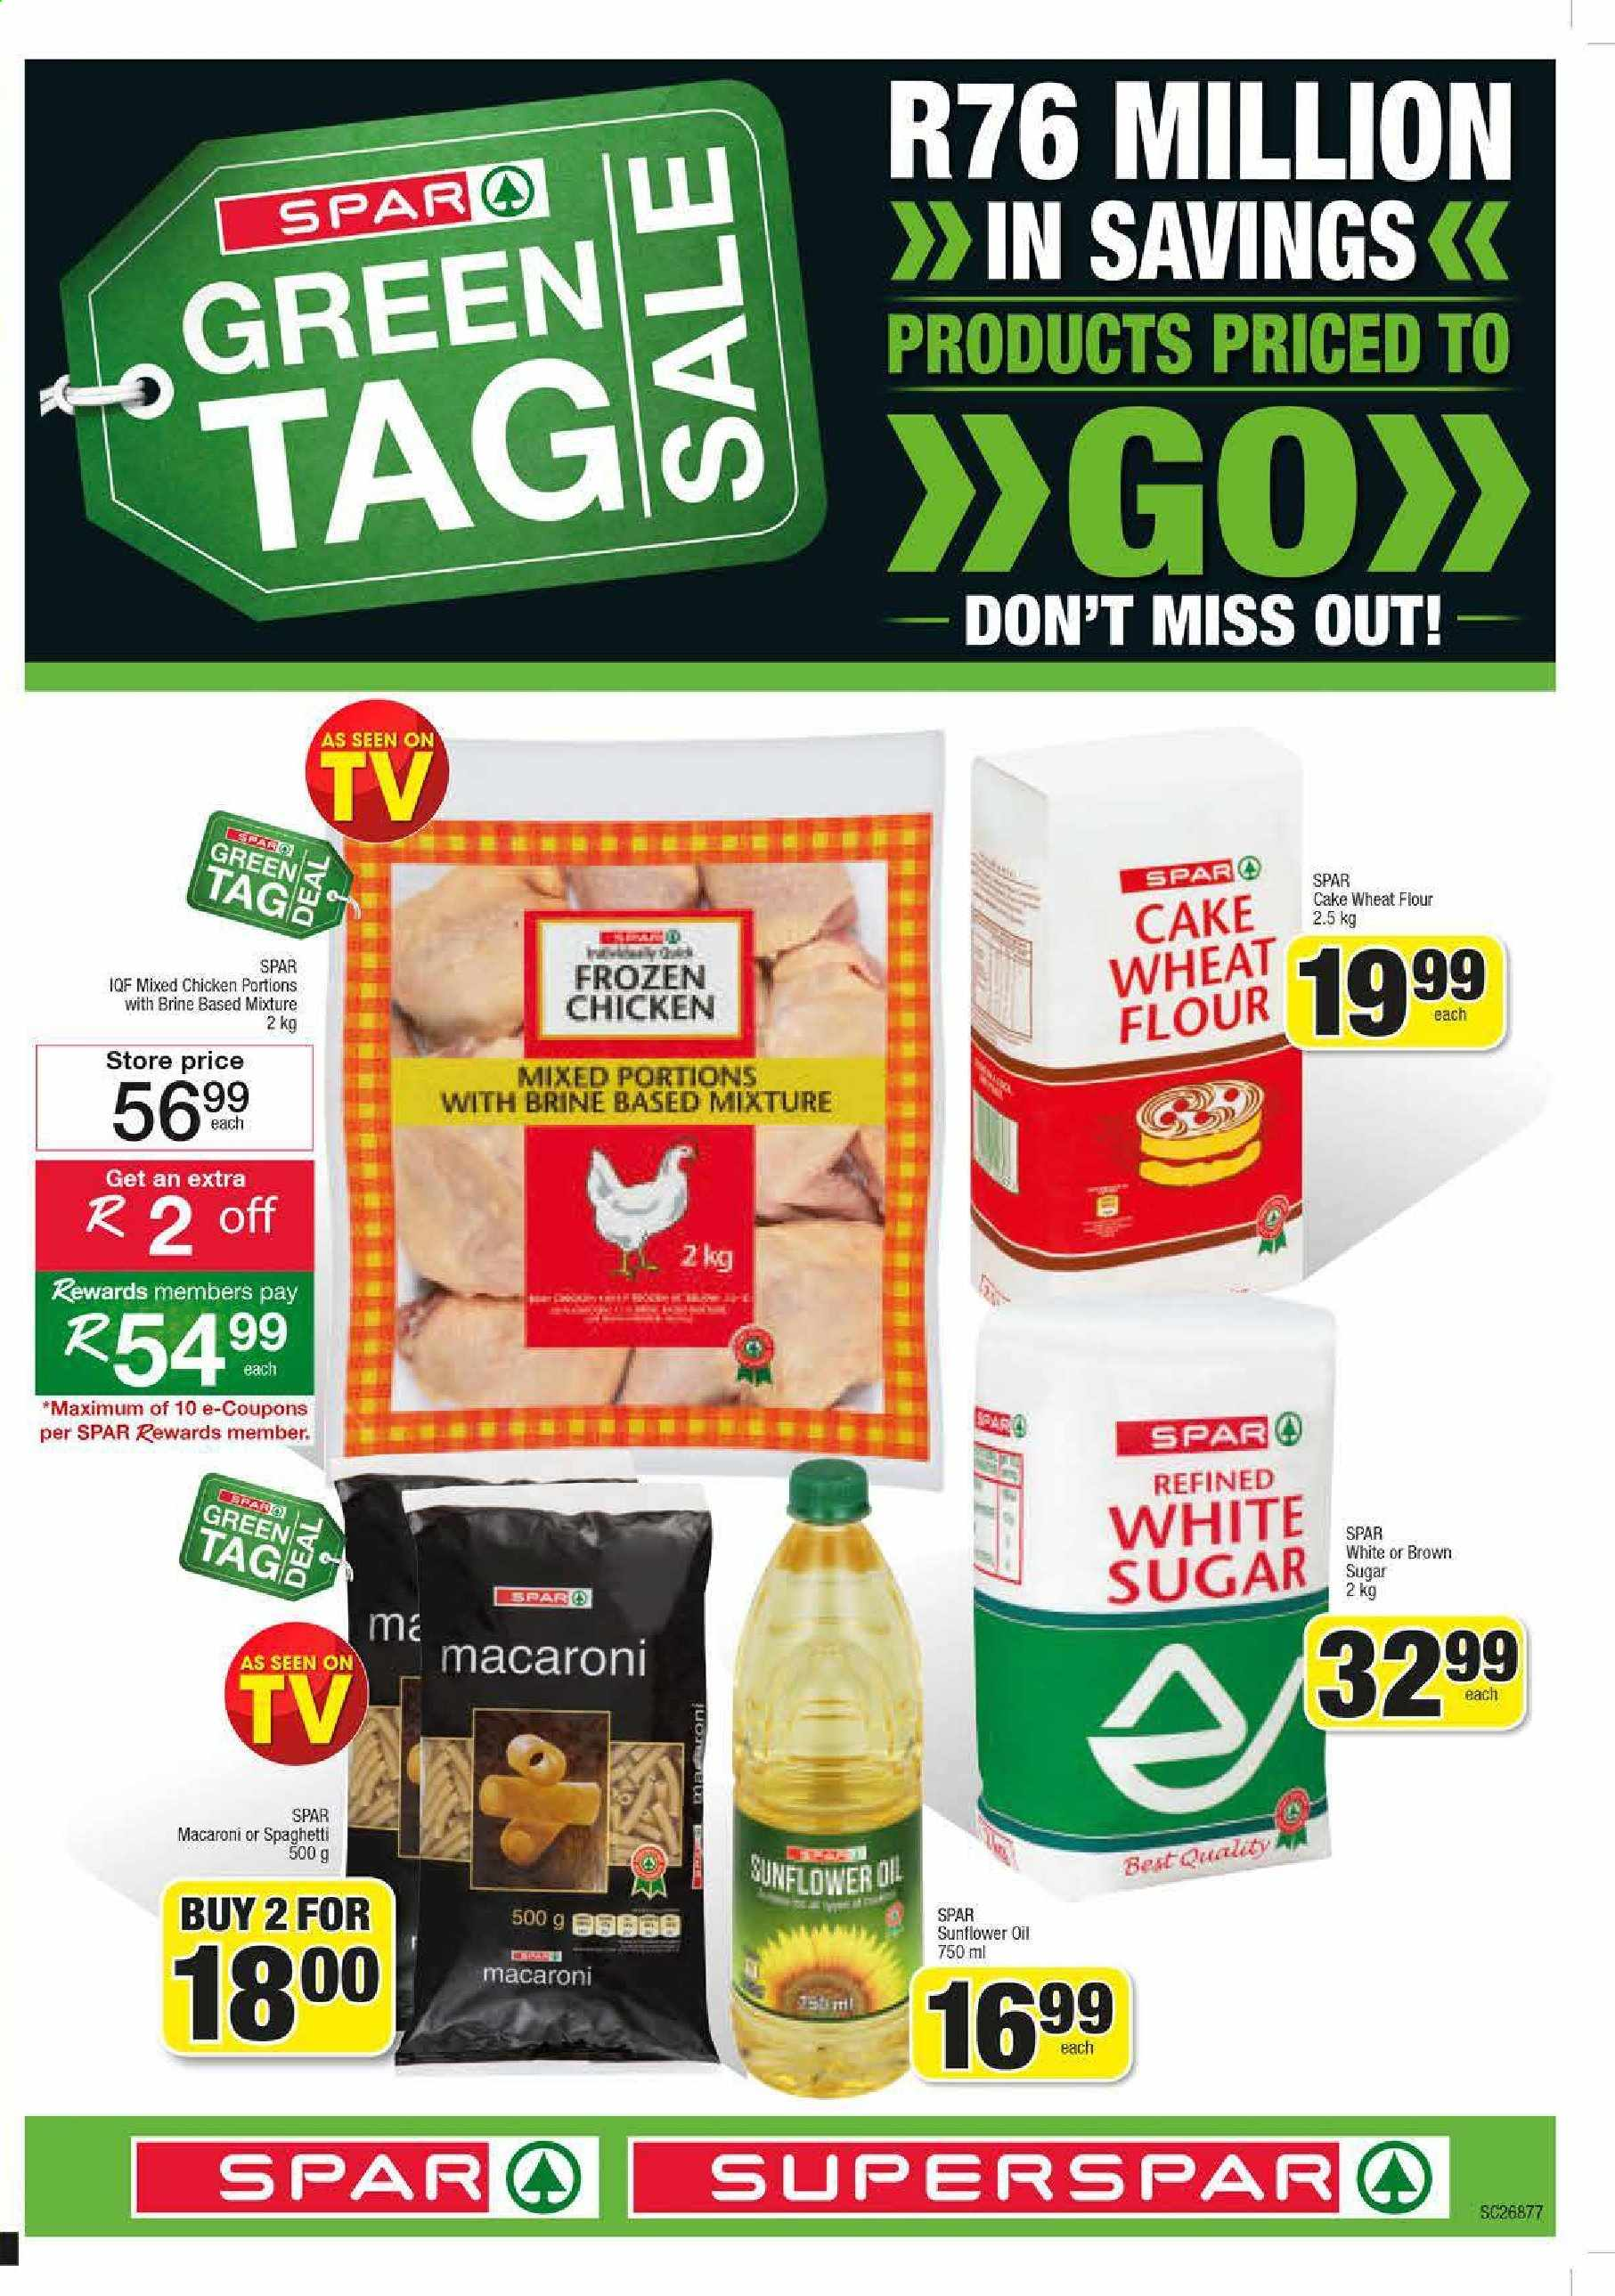 SPAR catalogue  - 03.09.2020 - 03.22.2020. Page 1.